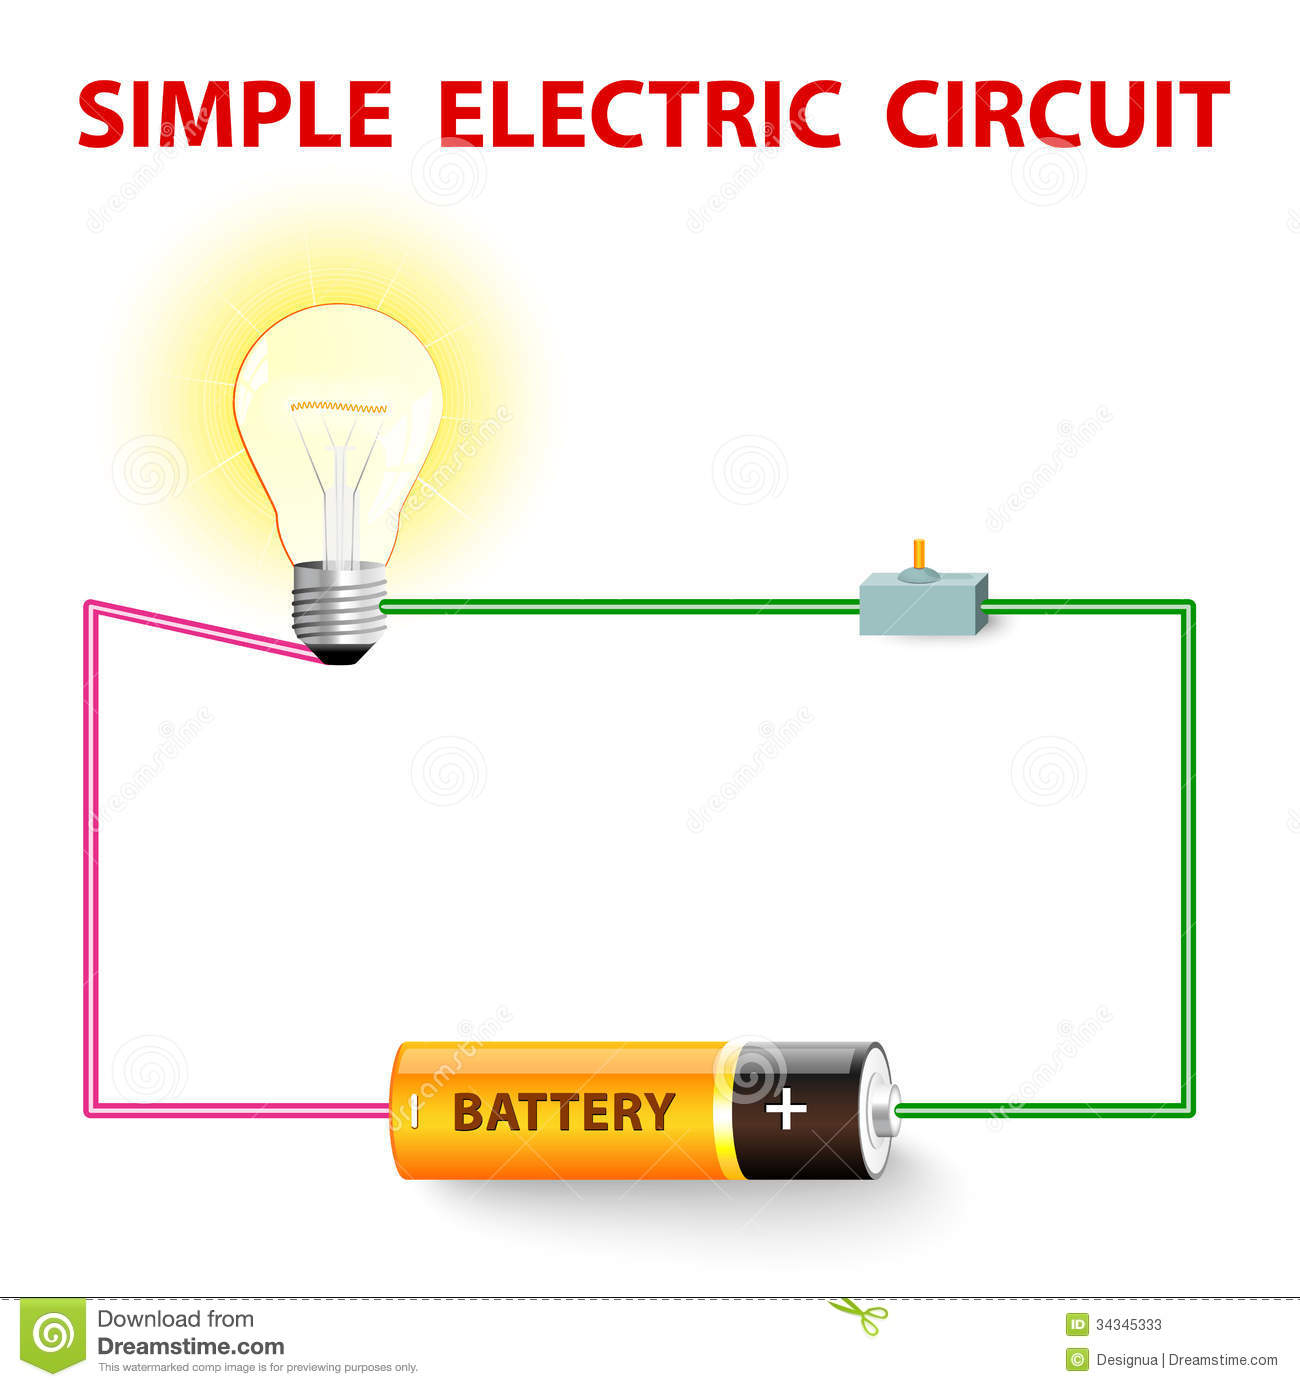 A simple electric circuit